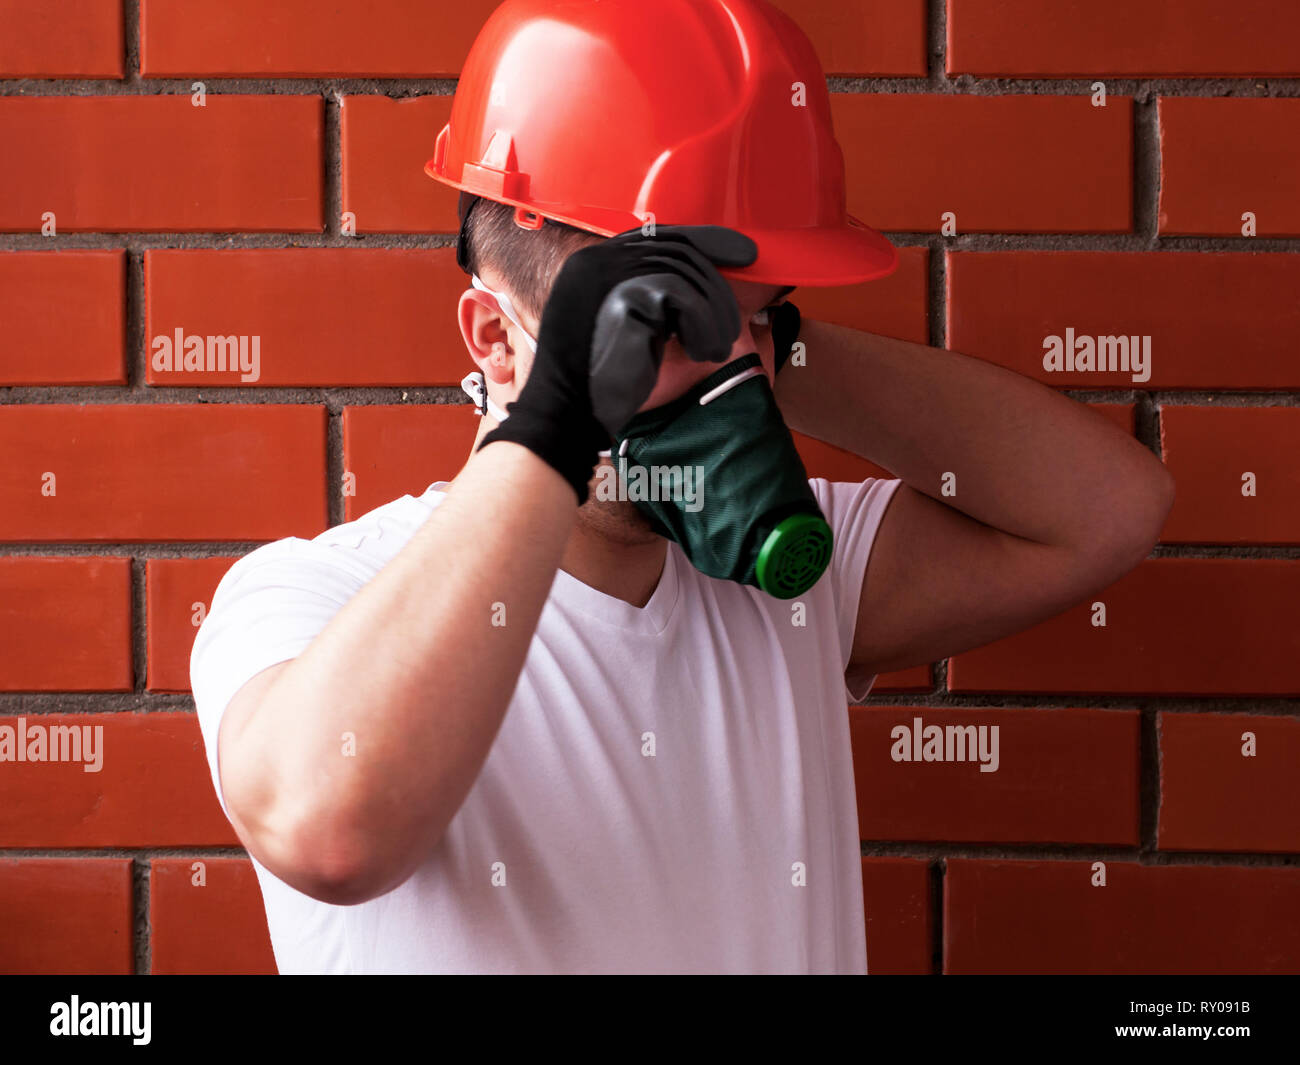 A Man In A Helmet And Respirator Performs Painting Work On A Concrete Ceiling Against A Background Of Brickwork The Concept Is Workplace Safety Diy Stock Photo Alamy